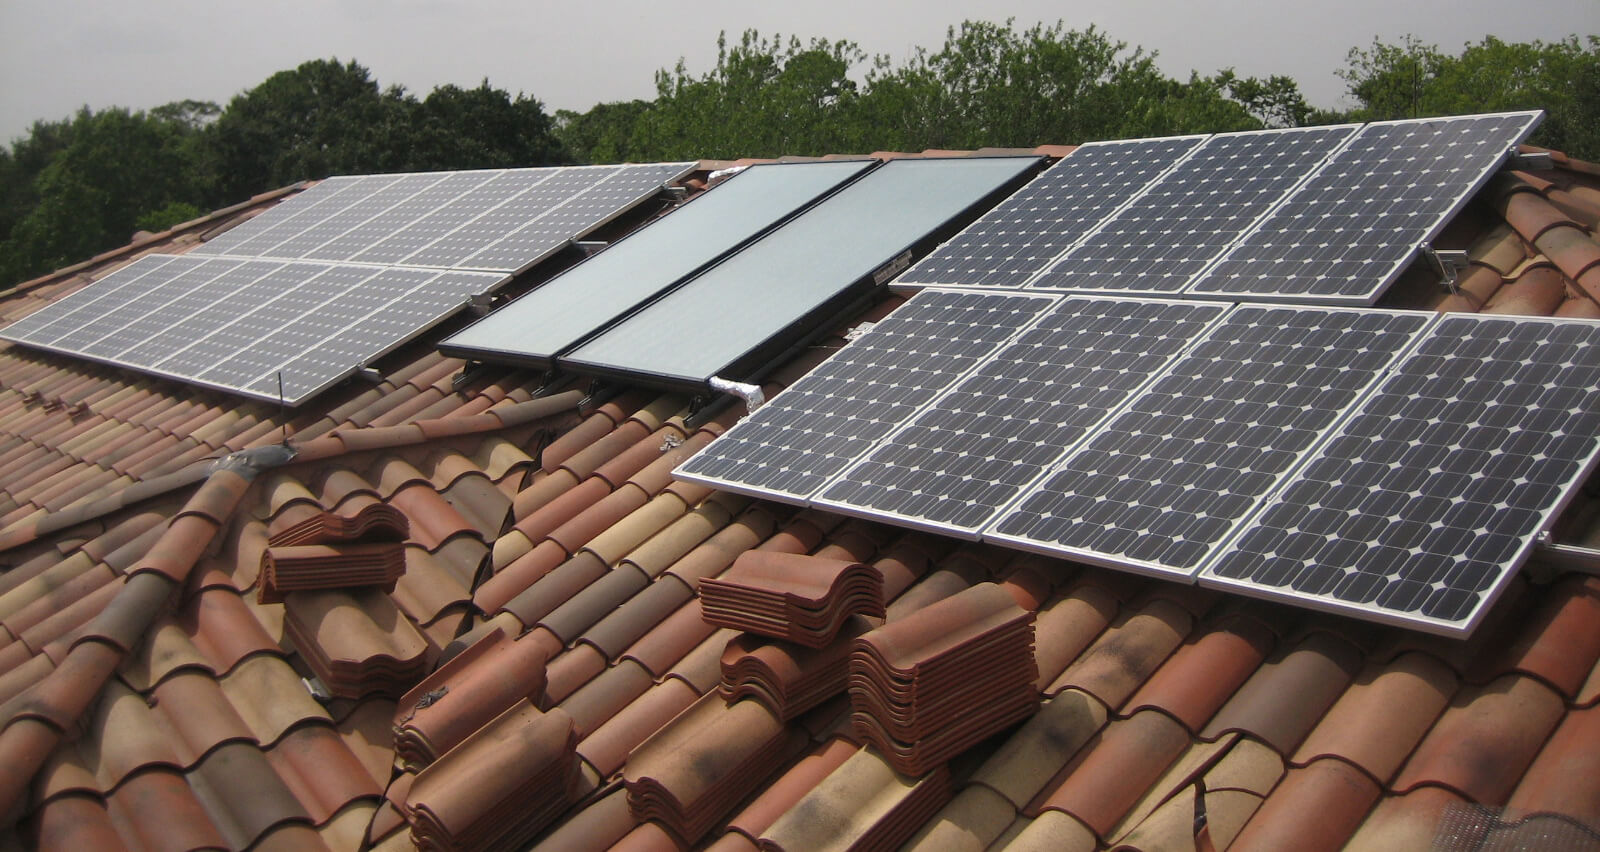 Newly installed solar panels on the roof